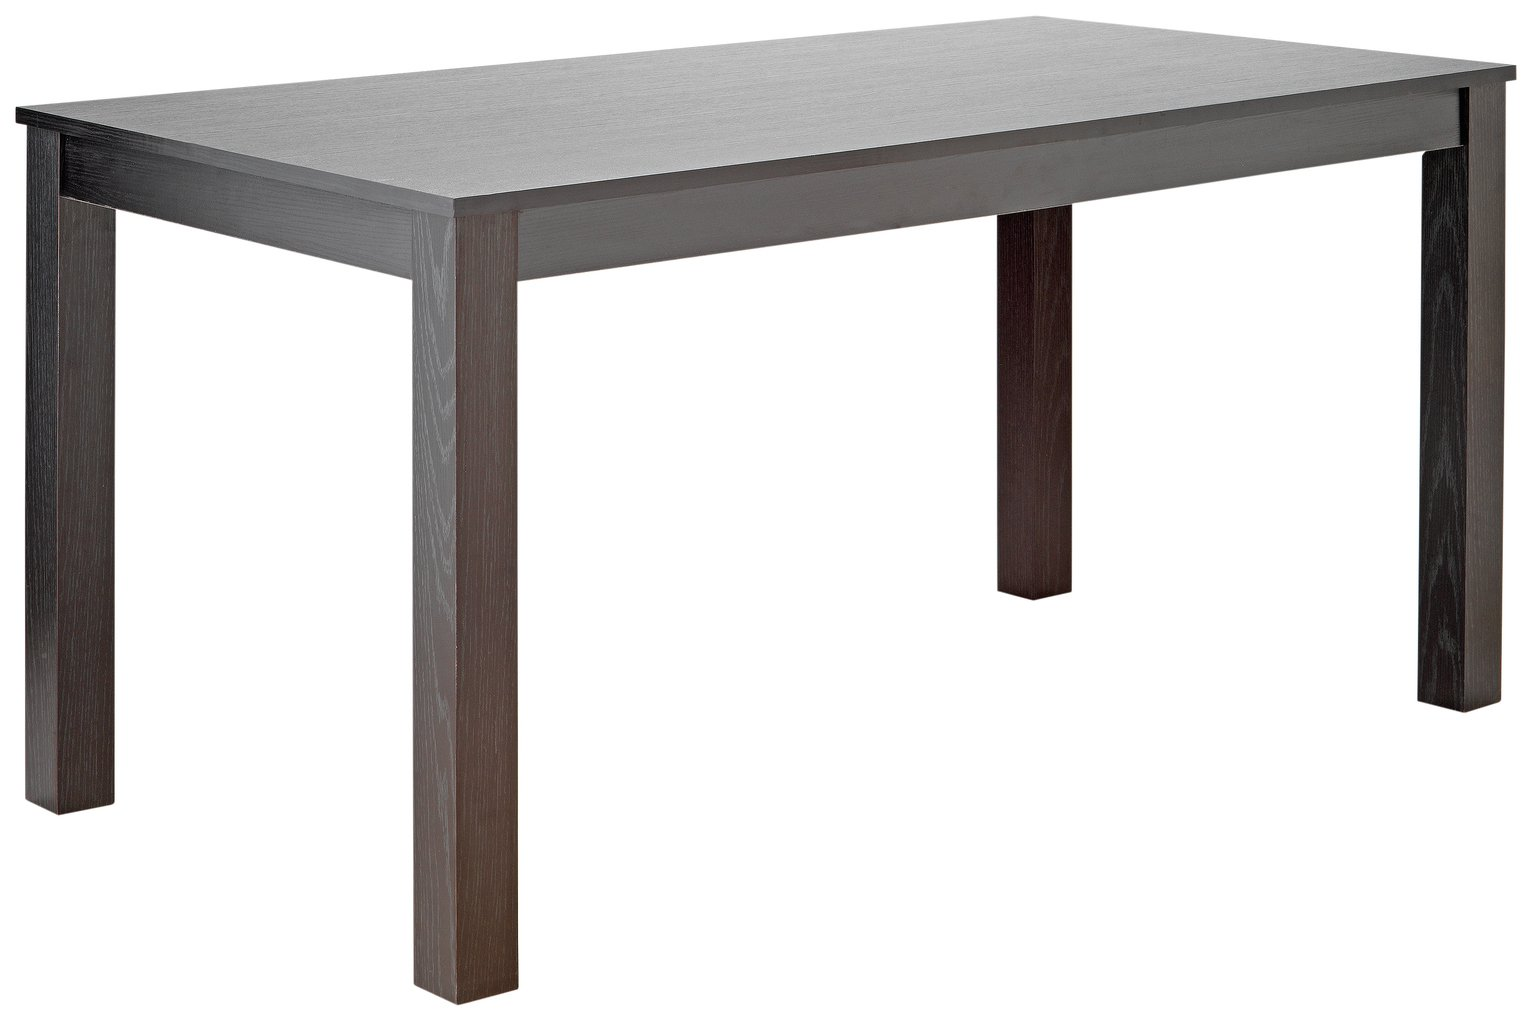 Image of HOME Wood Effect 6 Seater Dining Table - Black